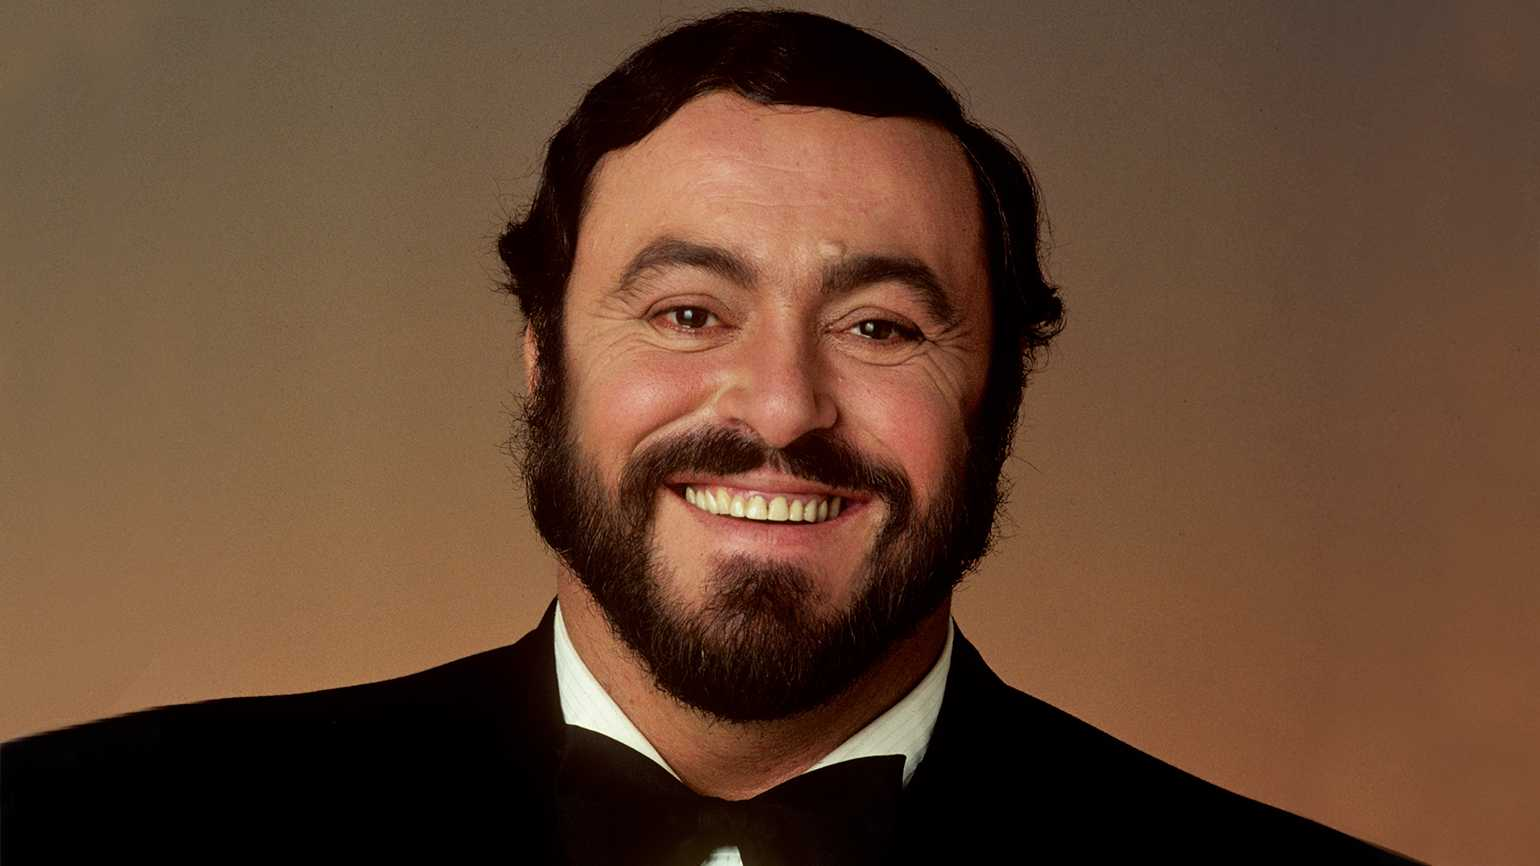 Guideposts Classics: Luciano Pavarotti on Making the Most of God's Gifts |  Guideposts